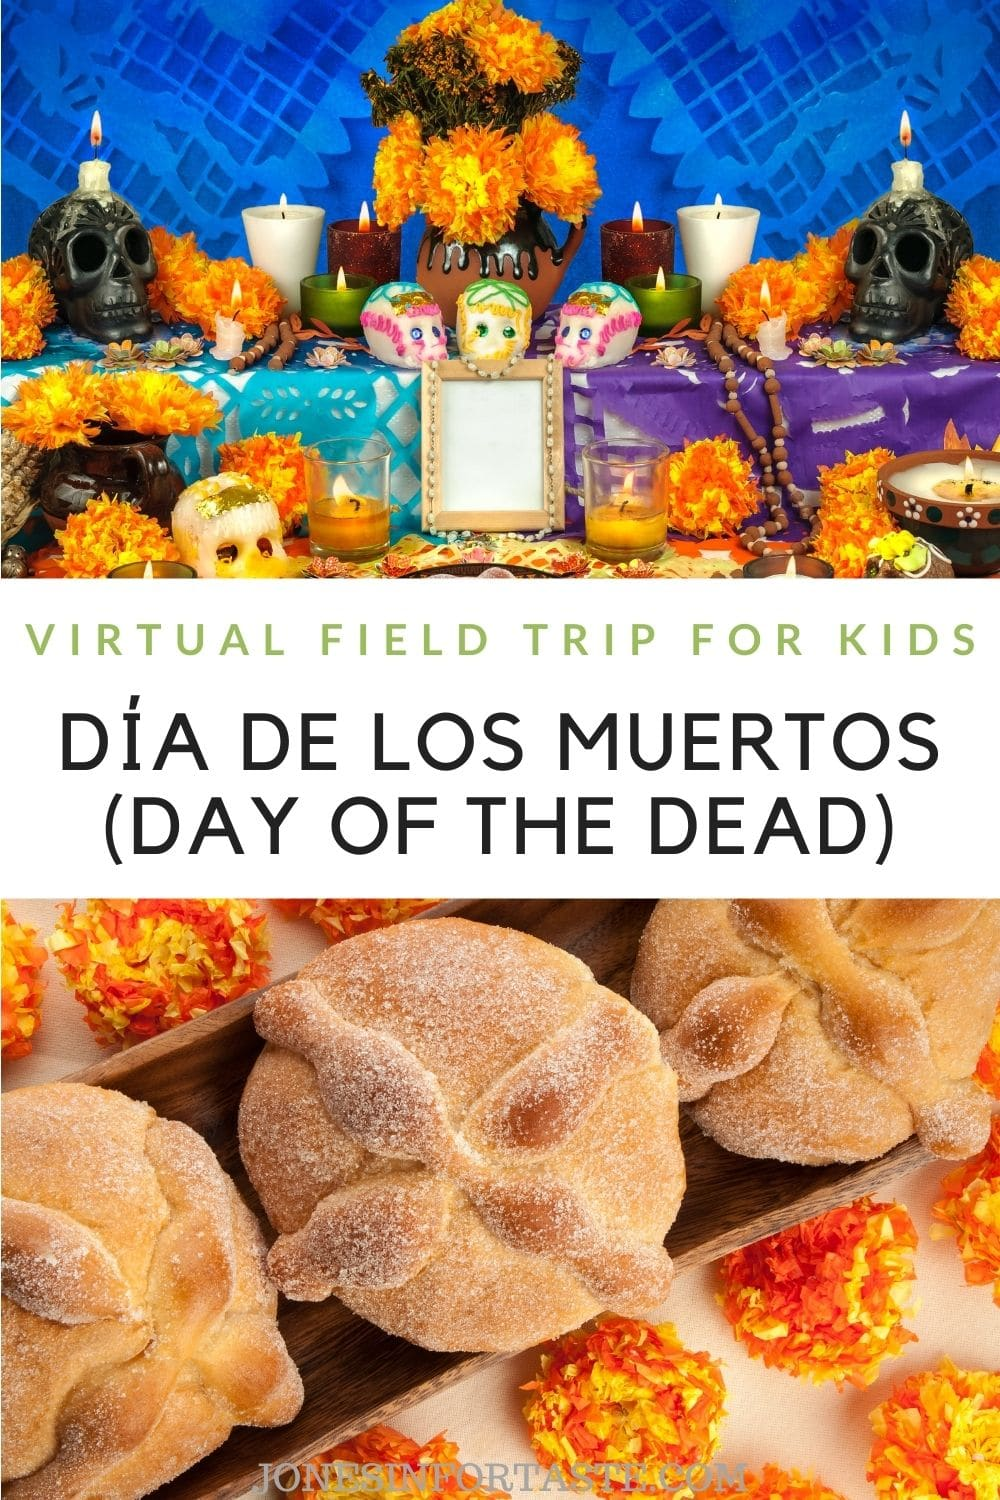 Day of the Dead Virtual Field Trip For Kids